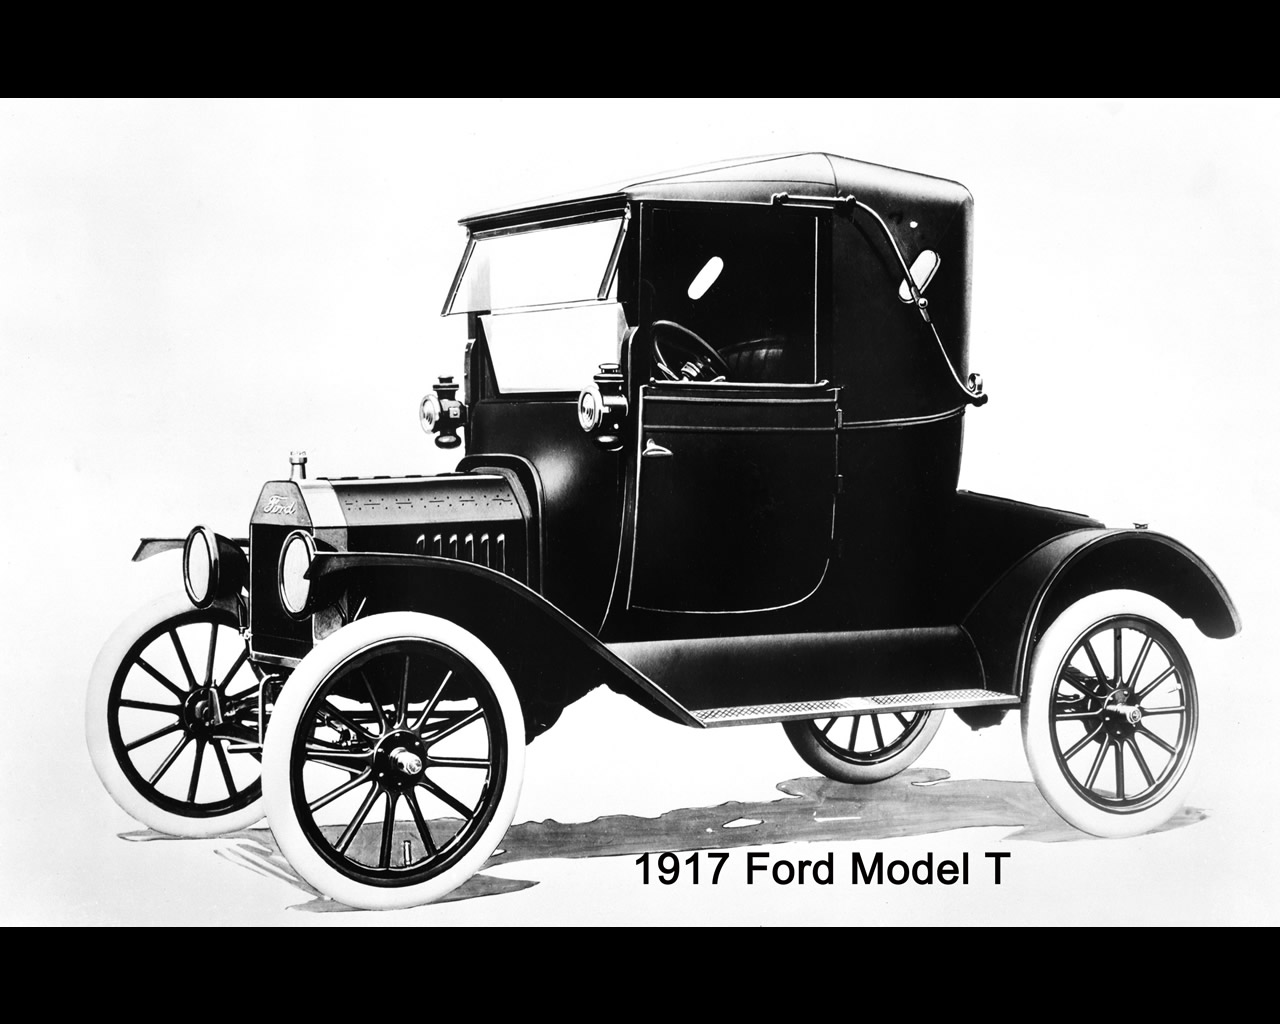 an analysis of fords model t in the united states The ford motor company  under which it had marketed entry-level luxury cars in the united states,  where model t vehicles were assembled using imported.